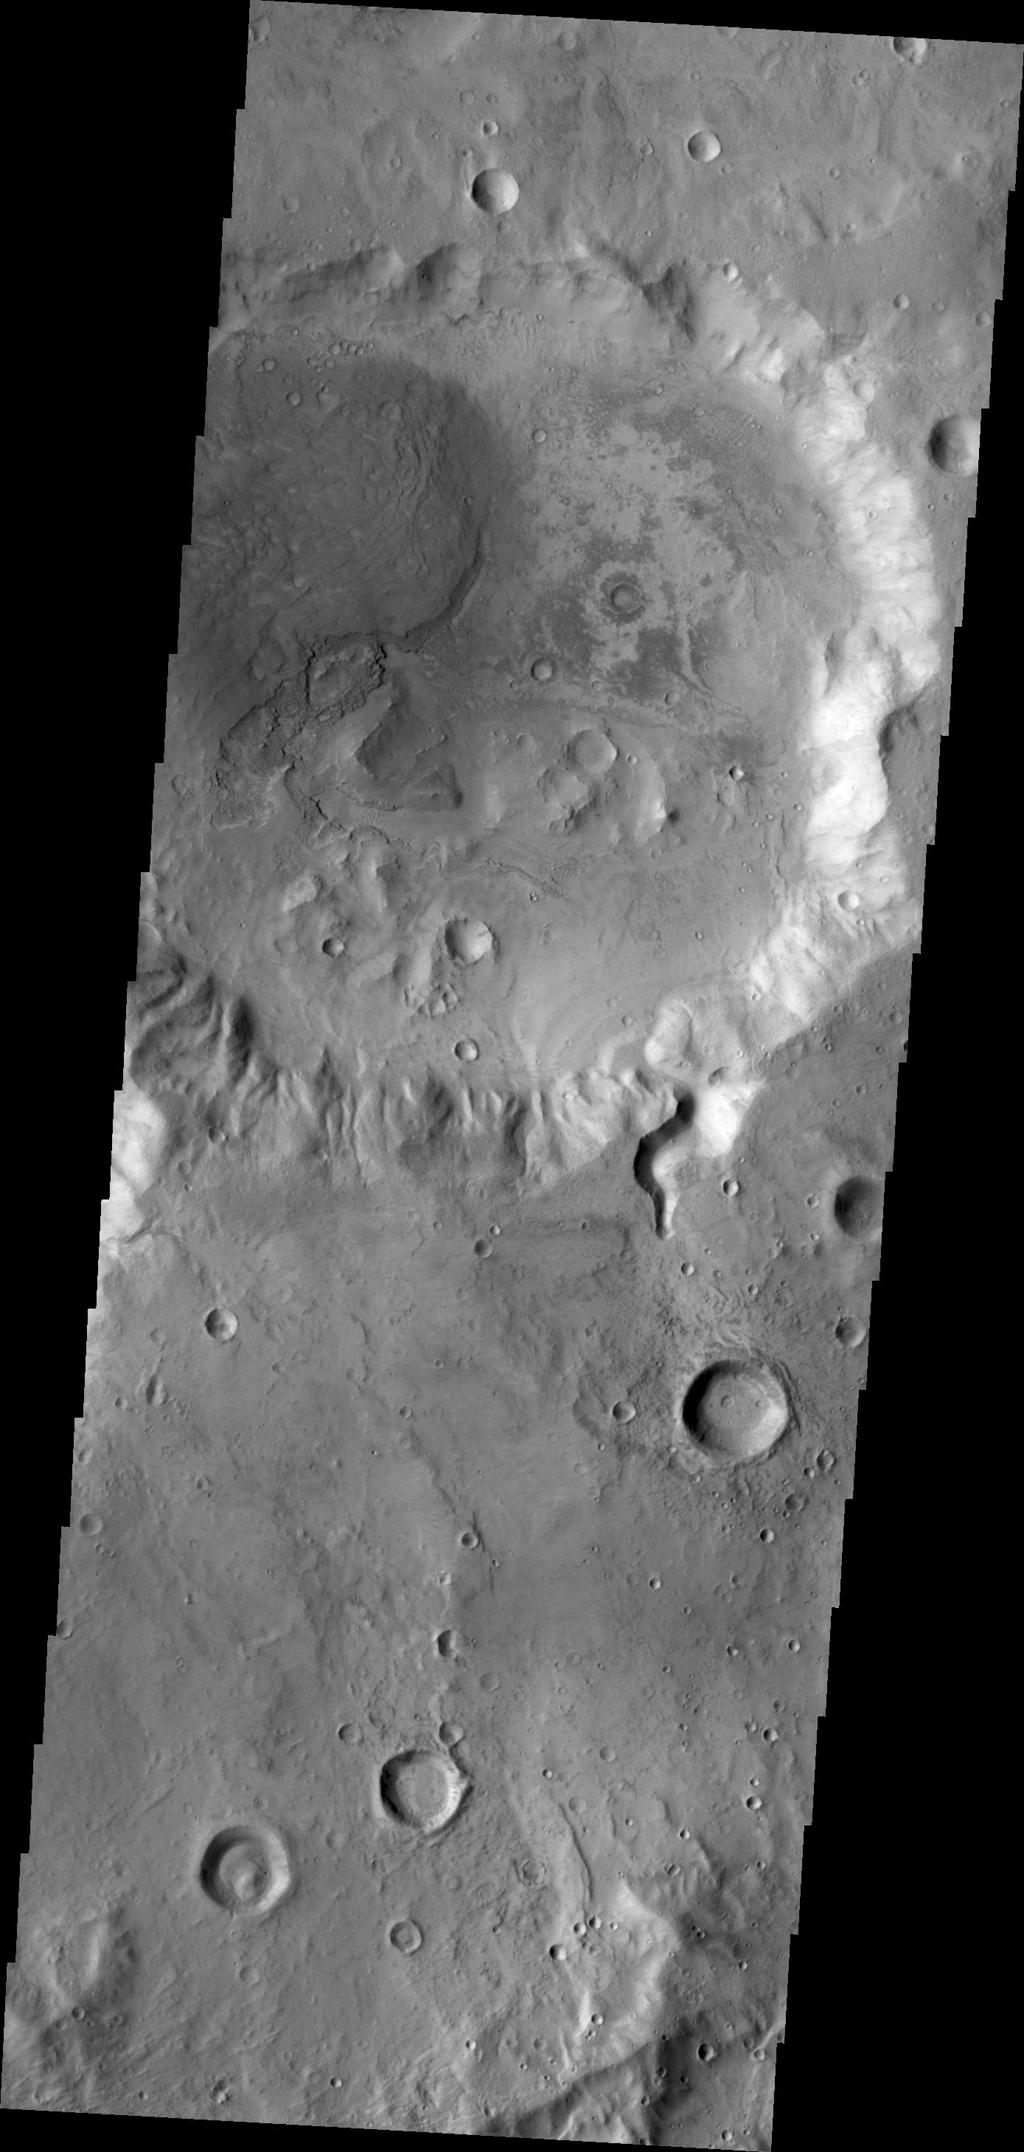 A small channel enters this unnamed crater in Arabia Terra. There appears to be a small fan or delta formed where the channel meets the crater floor. This image was captured by NASA's Mars Odyssey on June 15, 2010.